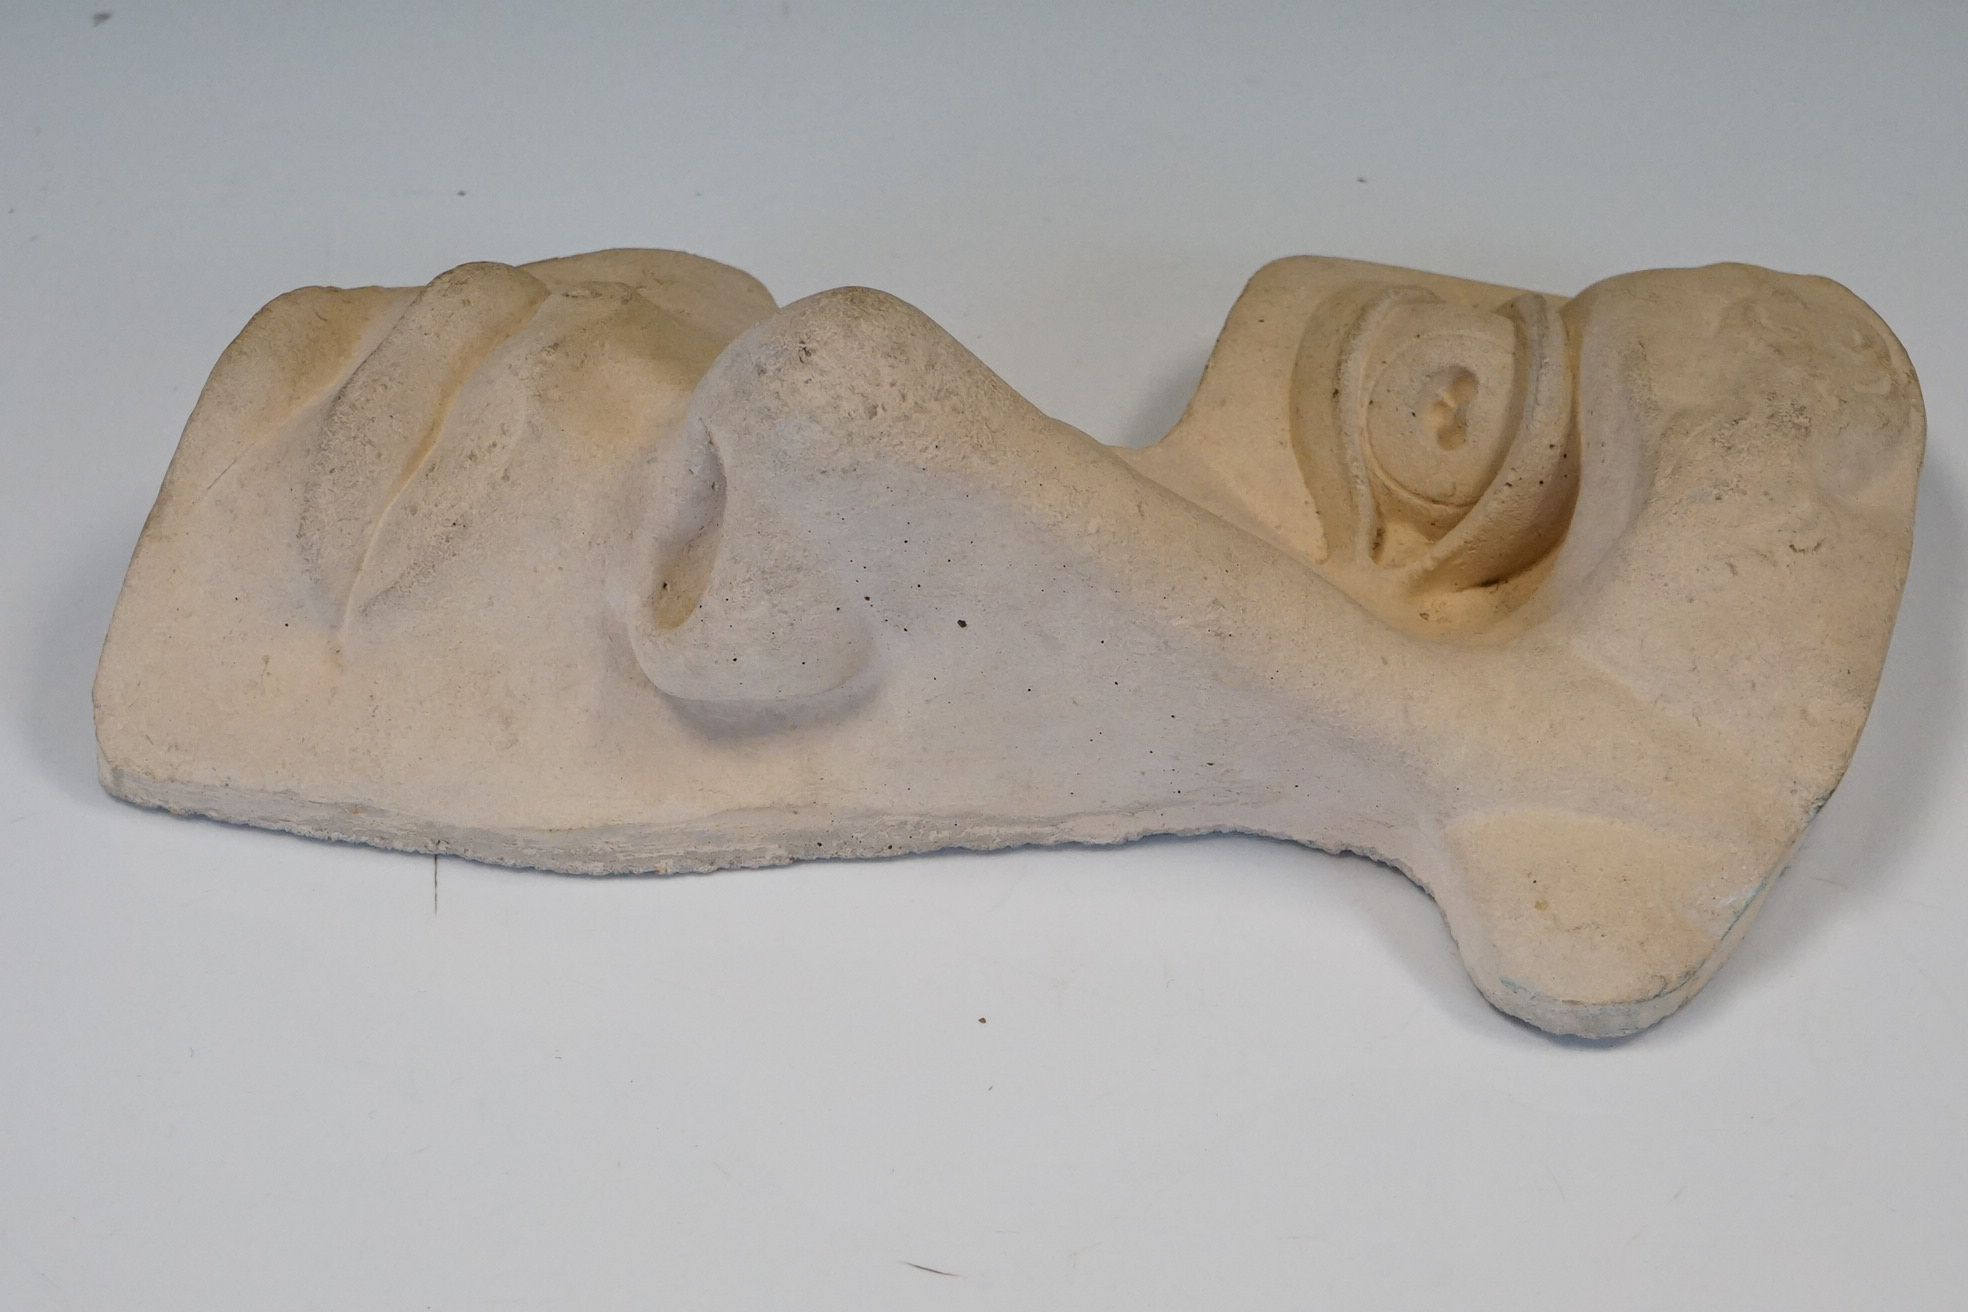 Contemporary stone sculpture of an opera mask / facial figure - Image 2 of 4